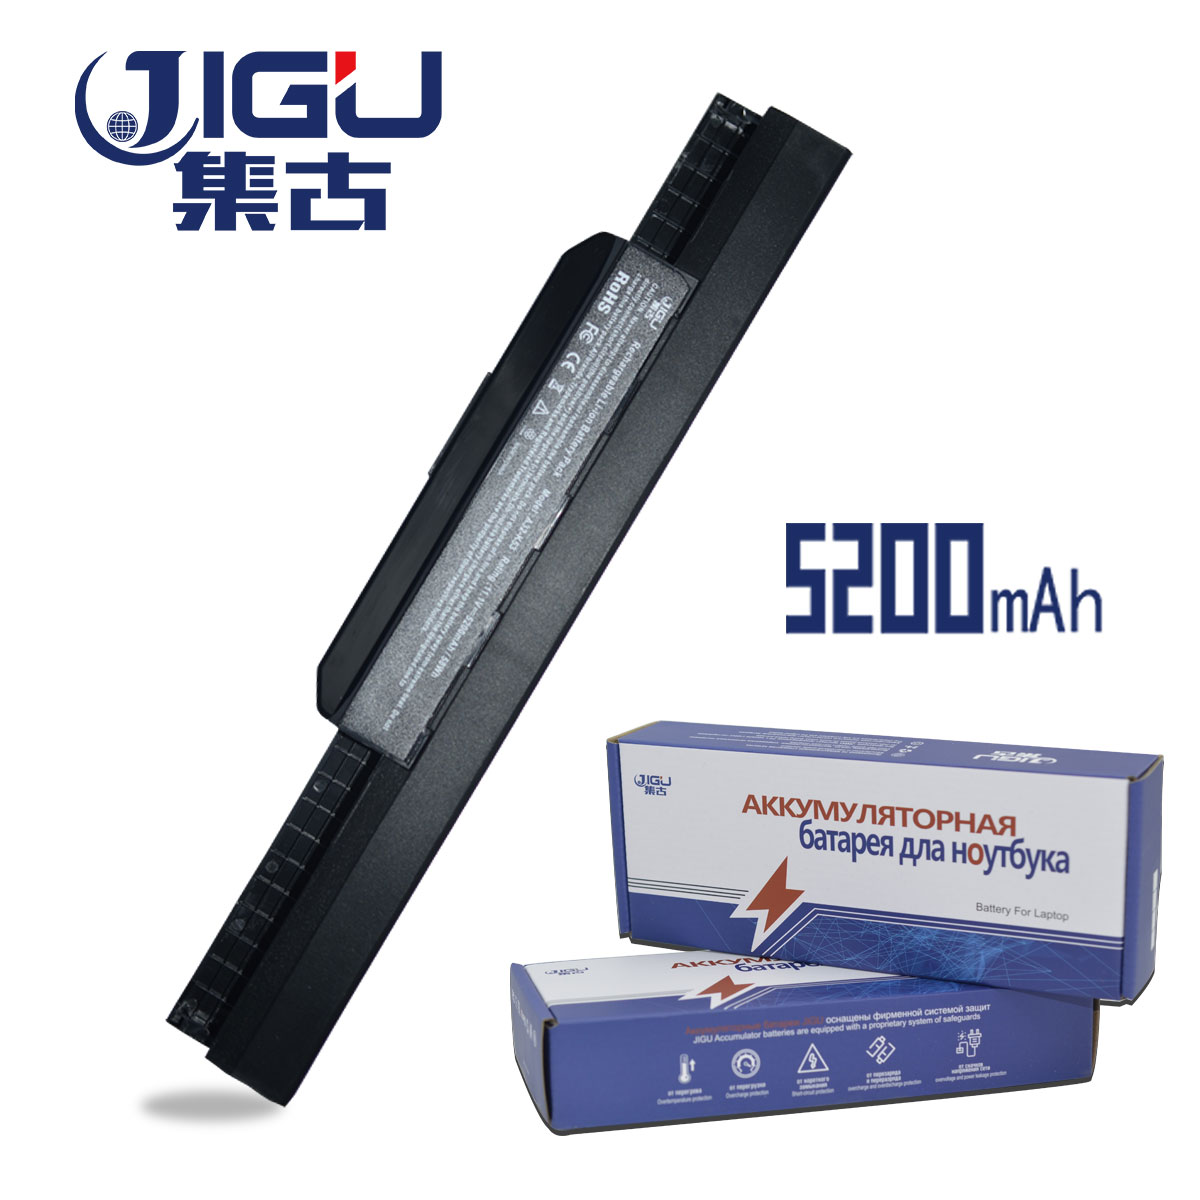 JIGU K53u New 6 Cell Laptop Battery For Asus A43TA K43T X43B A53S K53SJ X43SV A53SV K53S A53B K53 X43E A53E K53BY